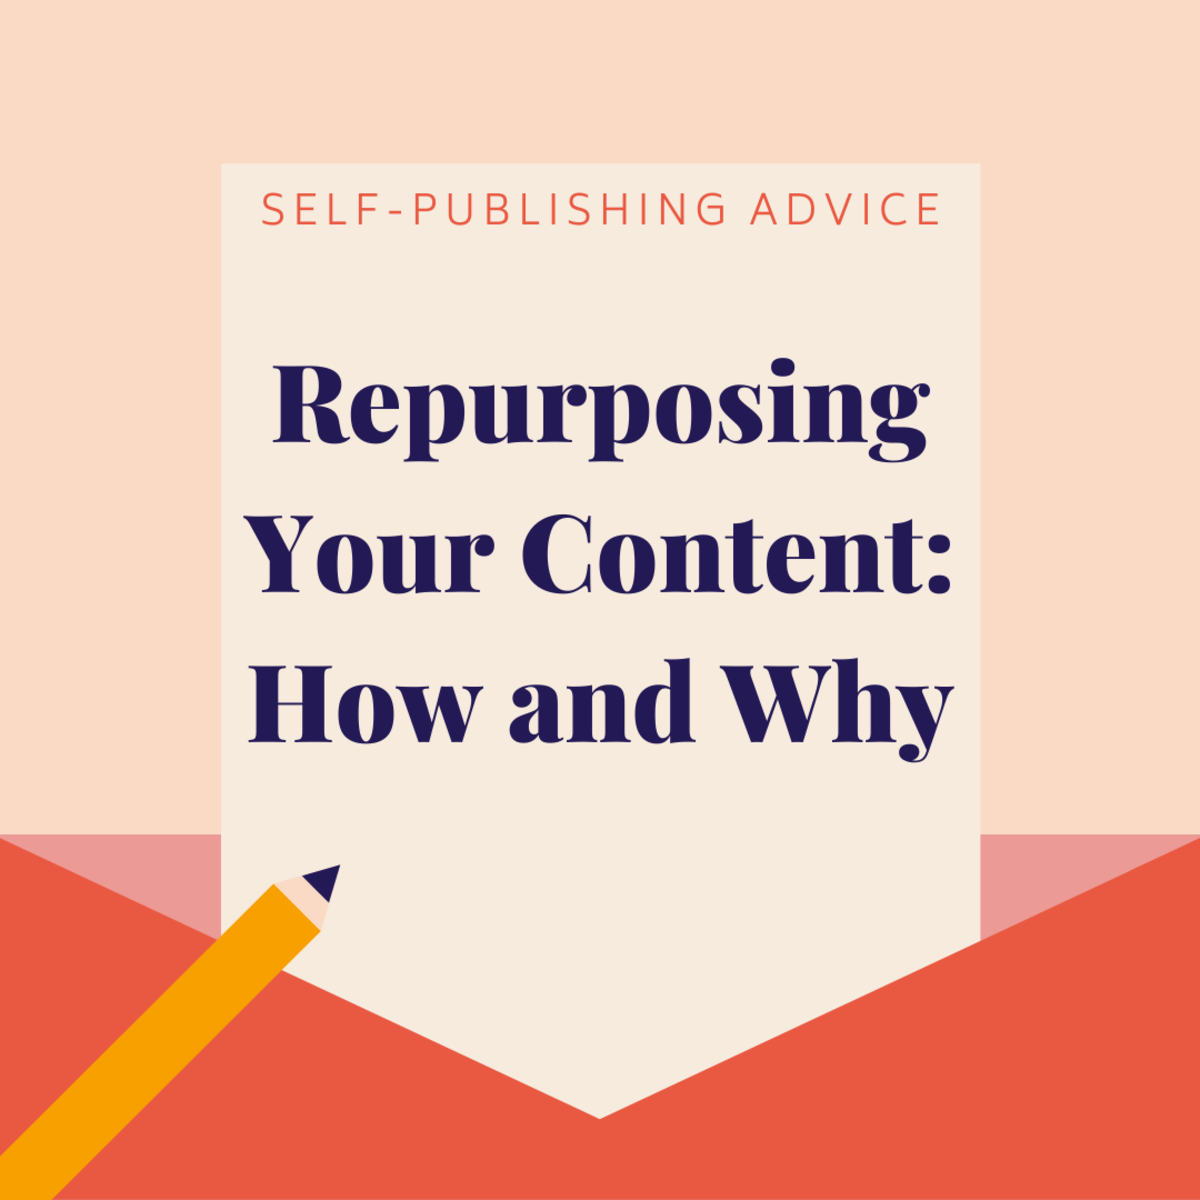 Learn about repurposing your written content to make more money off of it.